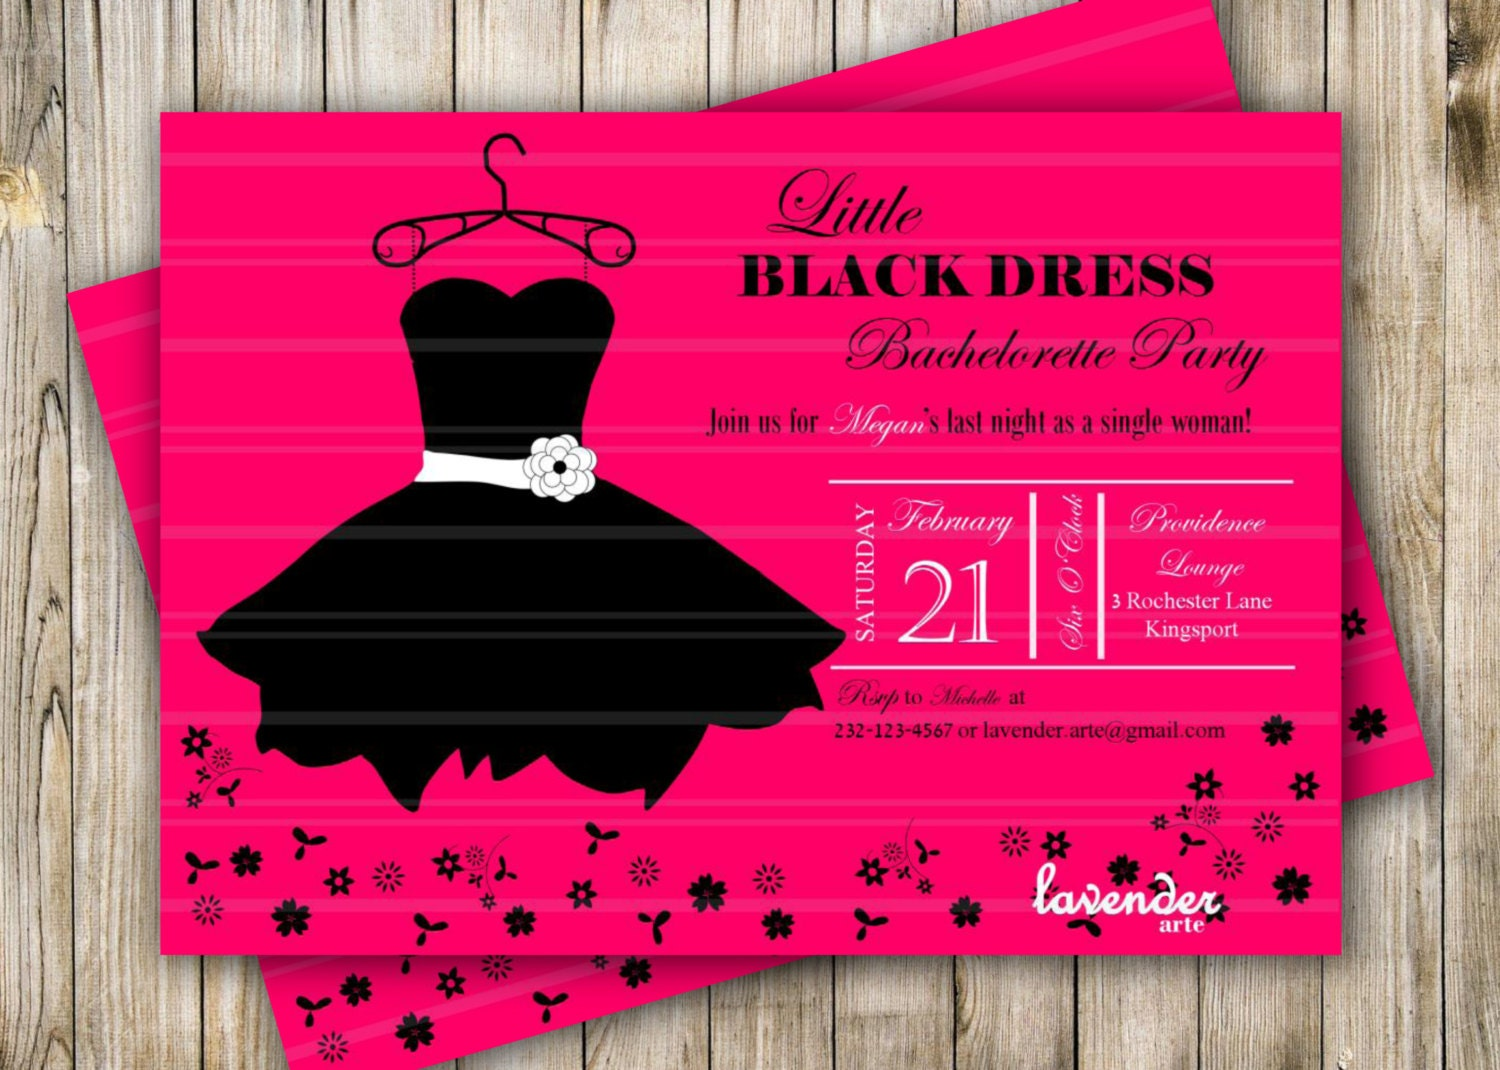 Little Black Dress Bachelorette Party Invites send ecards to email – Little Black Dress Bachelorette Party Invitations